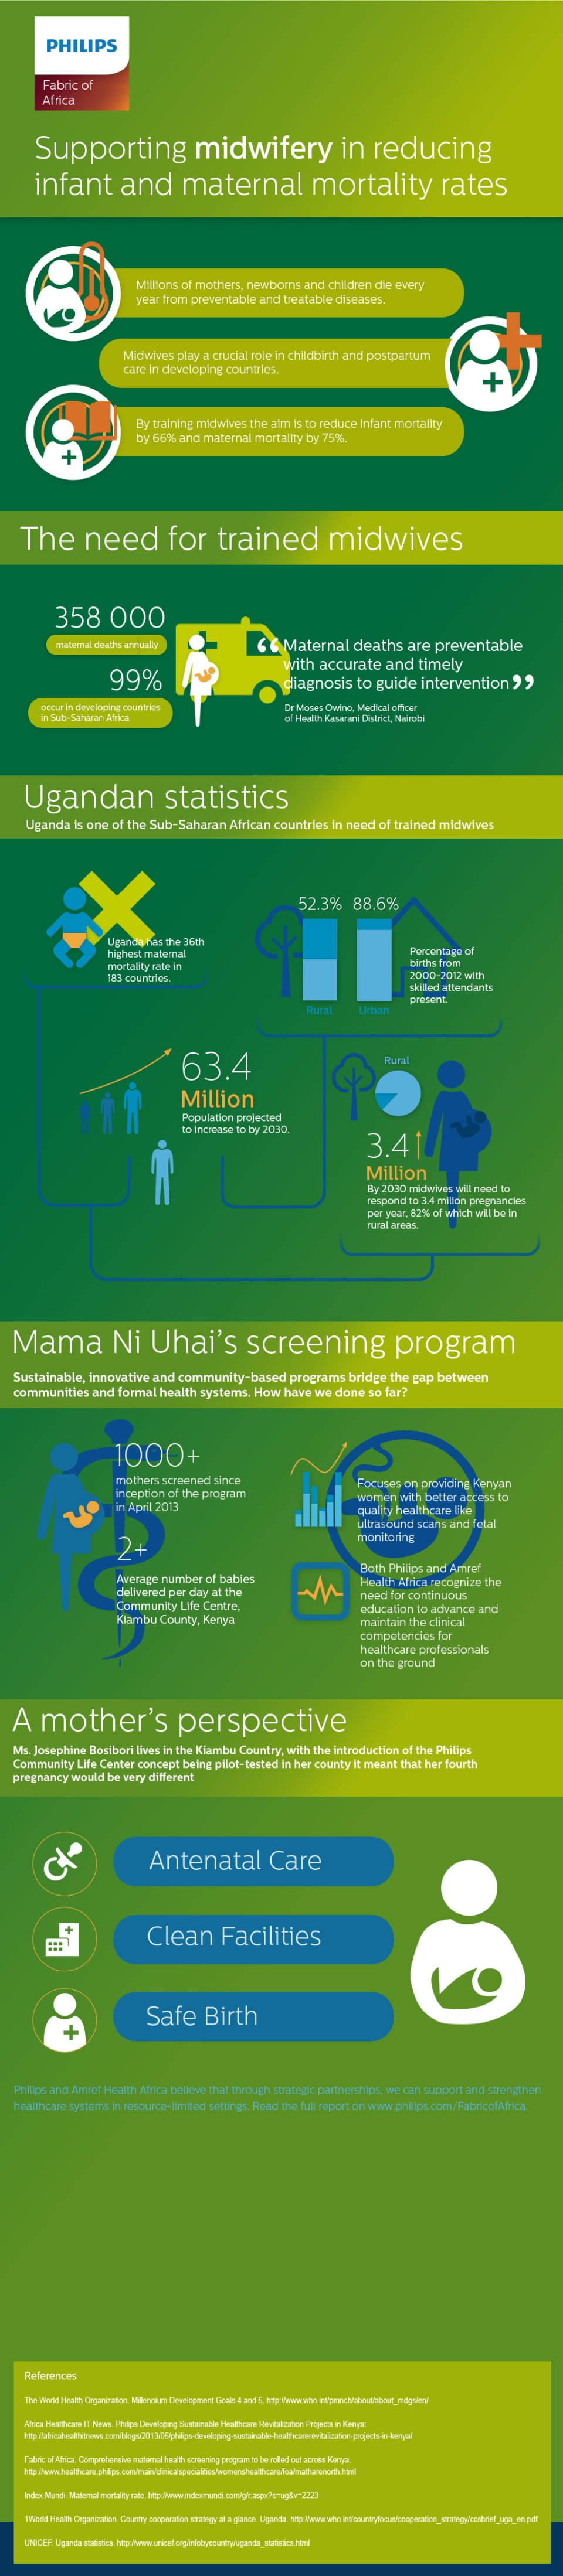 Philips Midwifery Infographic